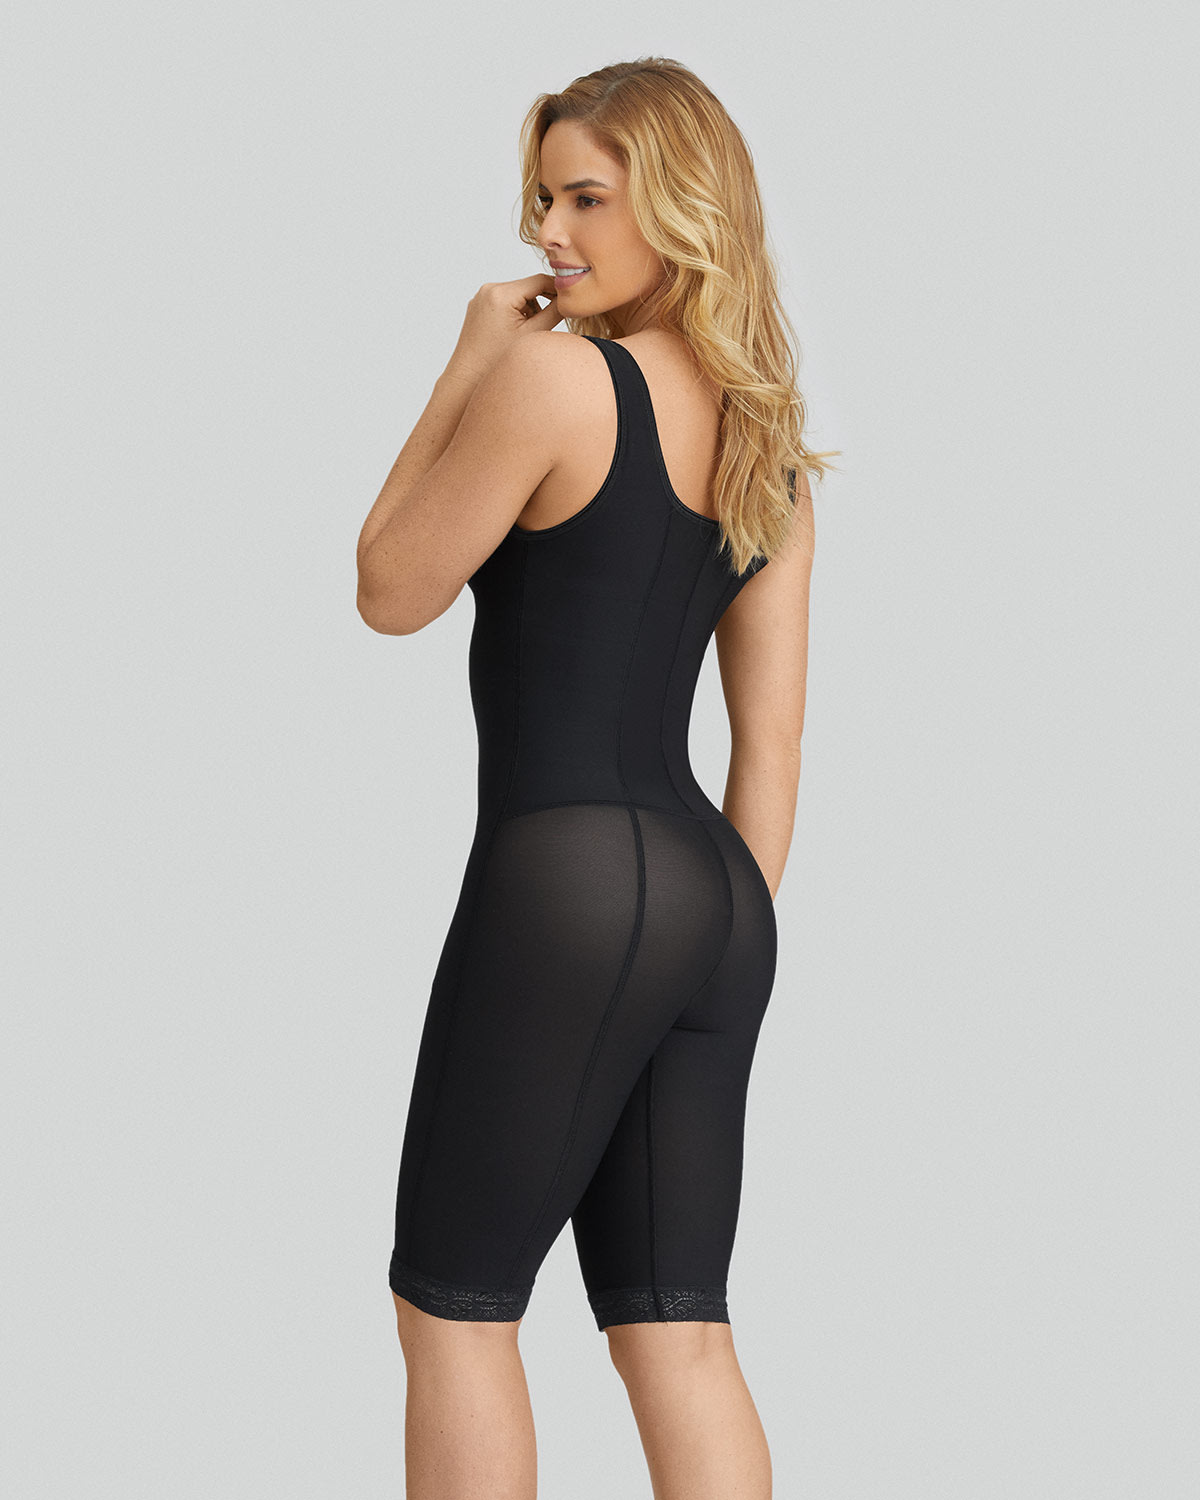 ab5020d35d5 Slimming braless body shaper with thighs slimmer